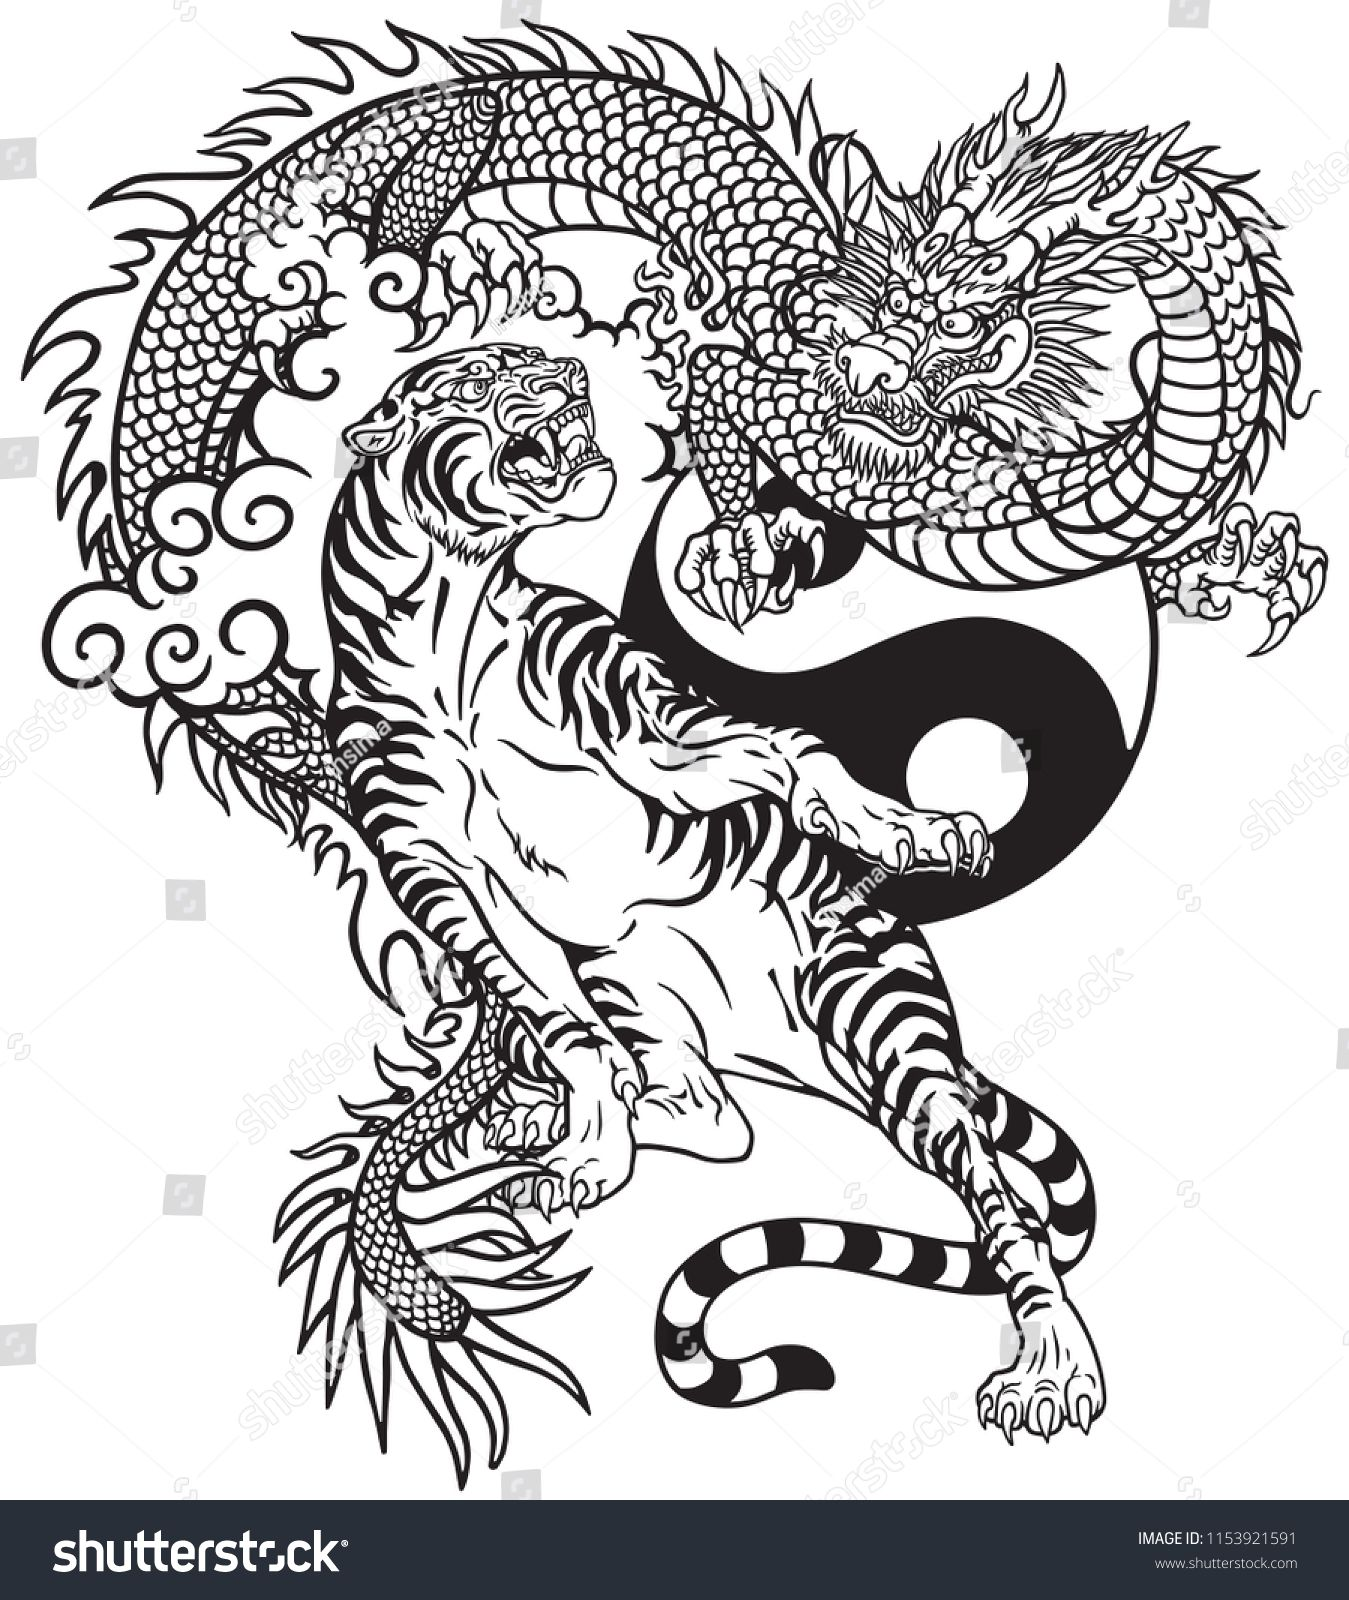 Chinese Dragon Versus Tiger Black And White Tattoo Vector Illustration Included Yin Yang Symbo Dragon Tattoo Images Dragon Tiger Tattoo Chinese Dragon Tattoos